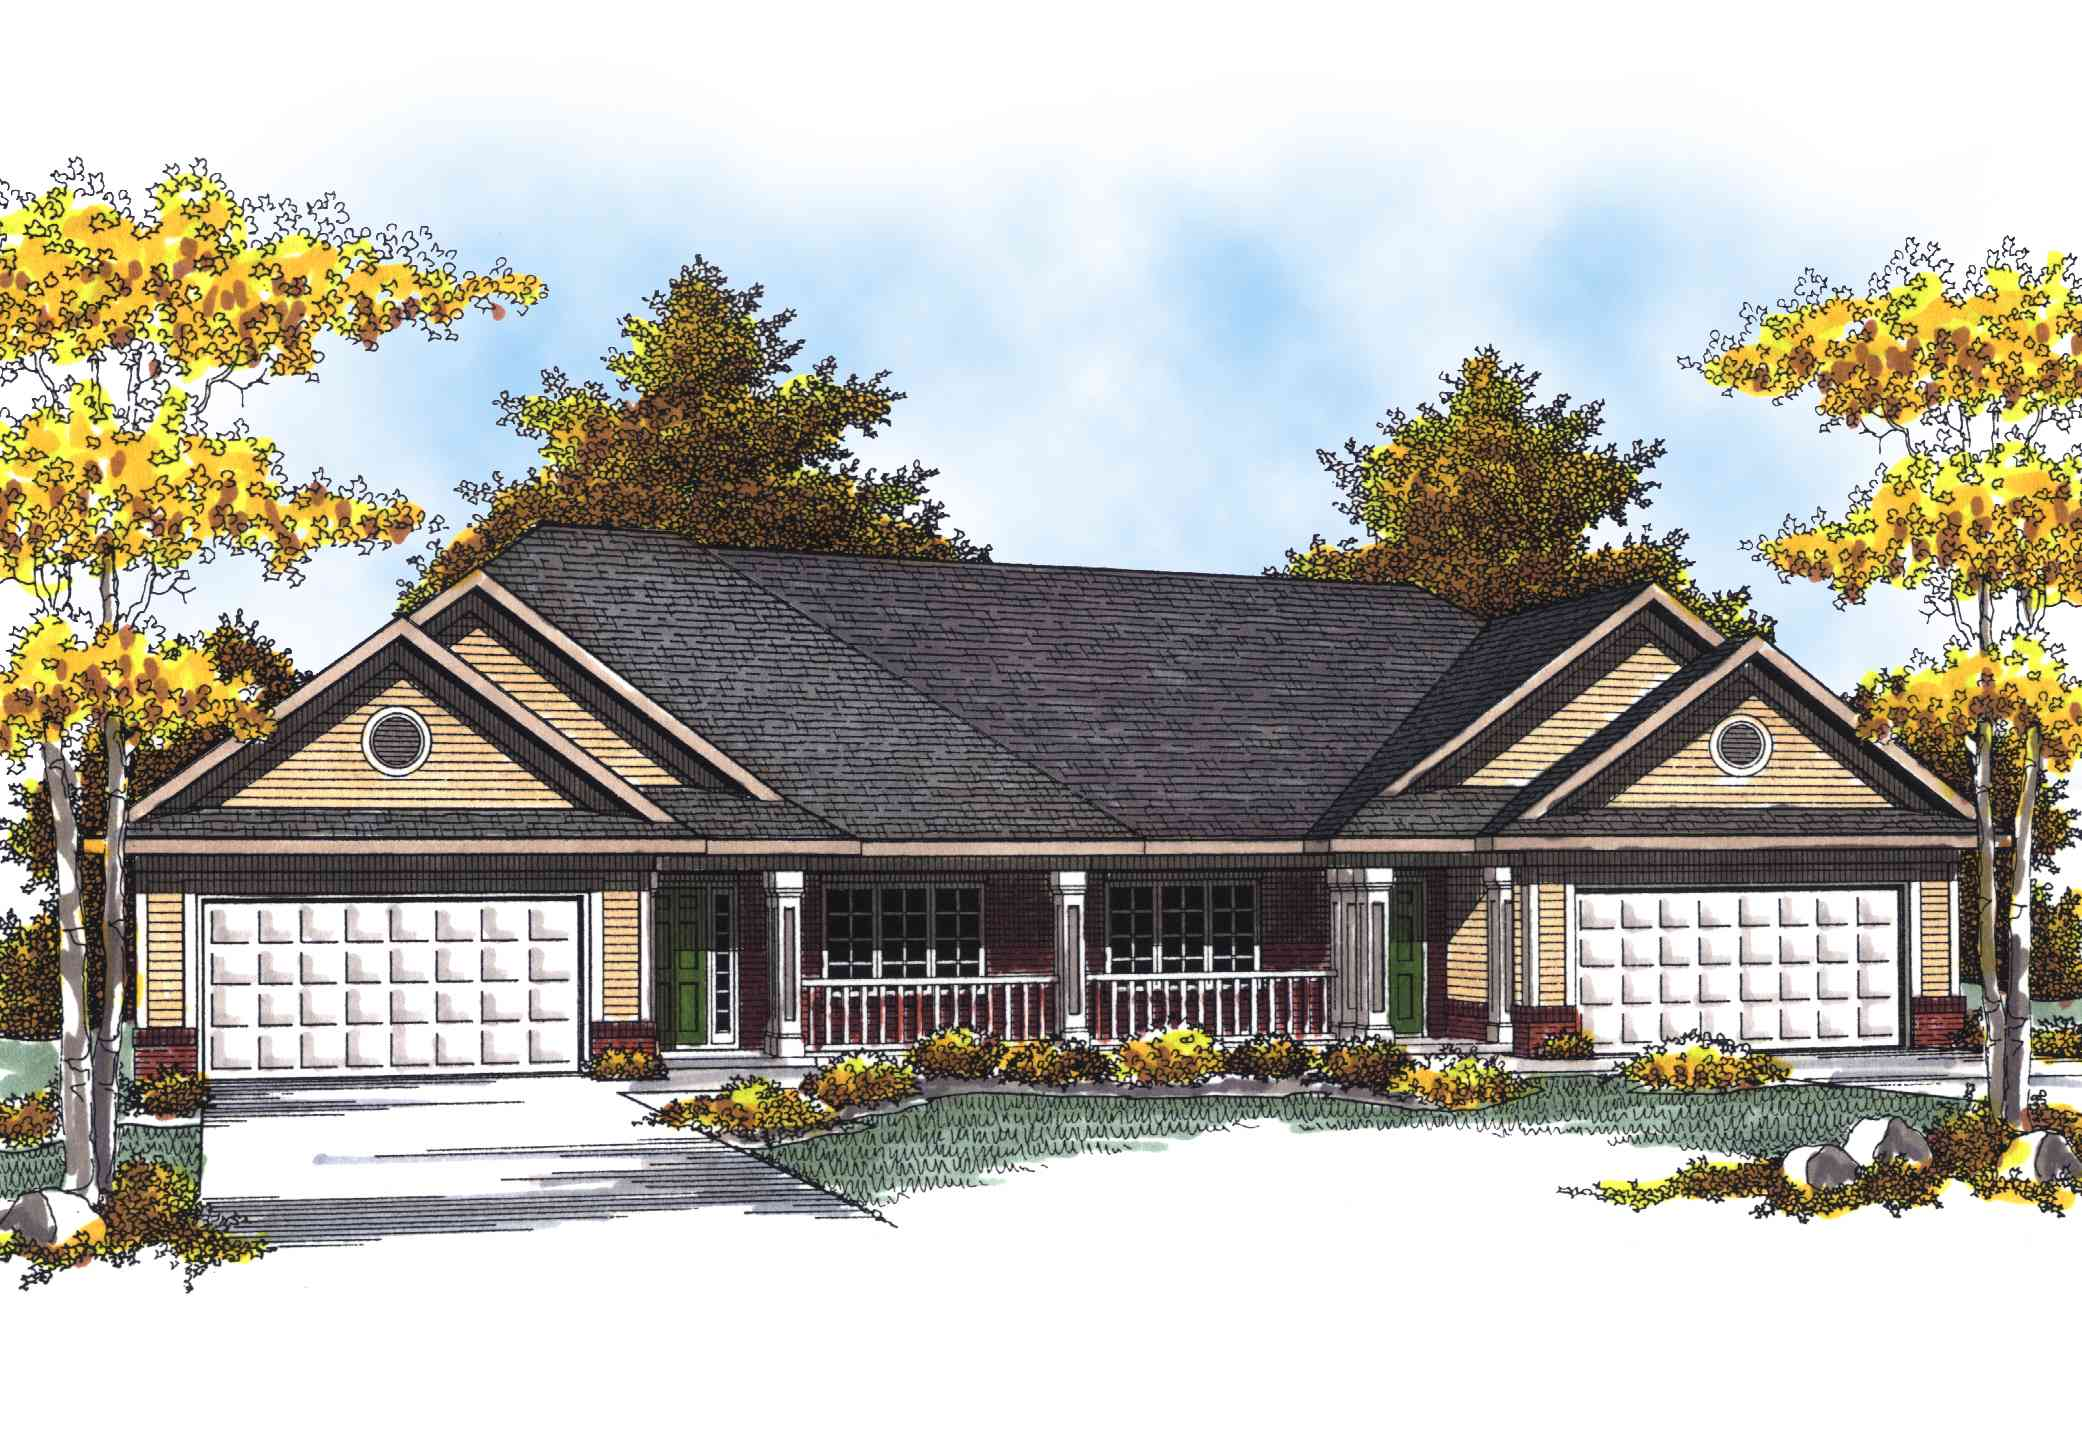 Traditional ranch duplex home plan 89293ah for Ranch house plans with garage